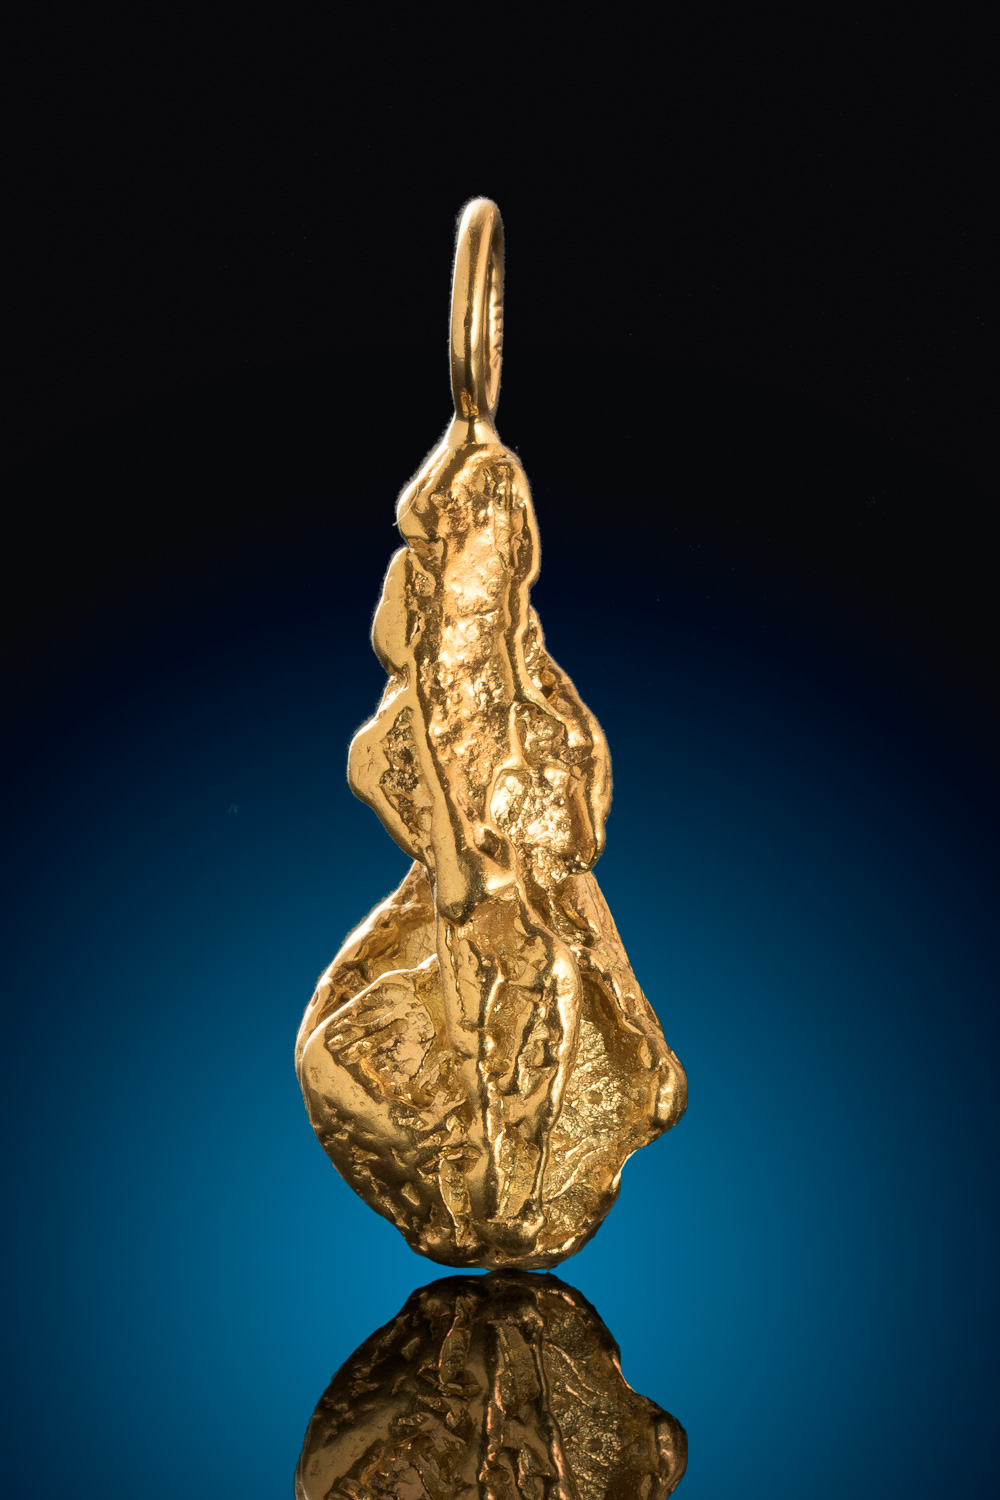 A Brilliant Gold Nugget Pendant - Mike's Choice from Alaska